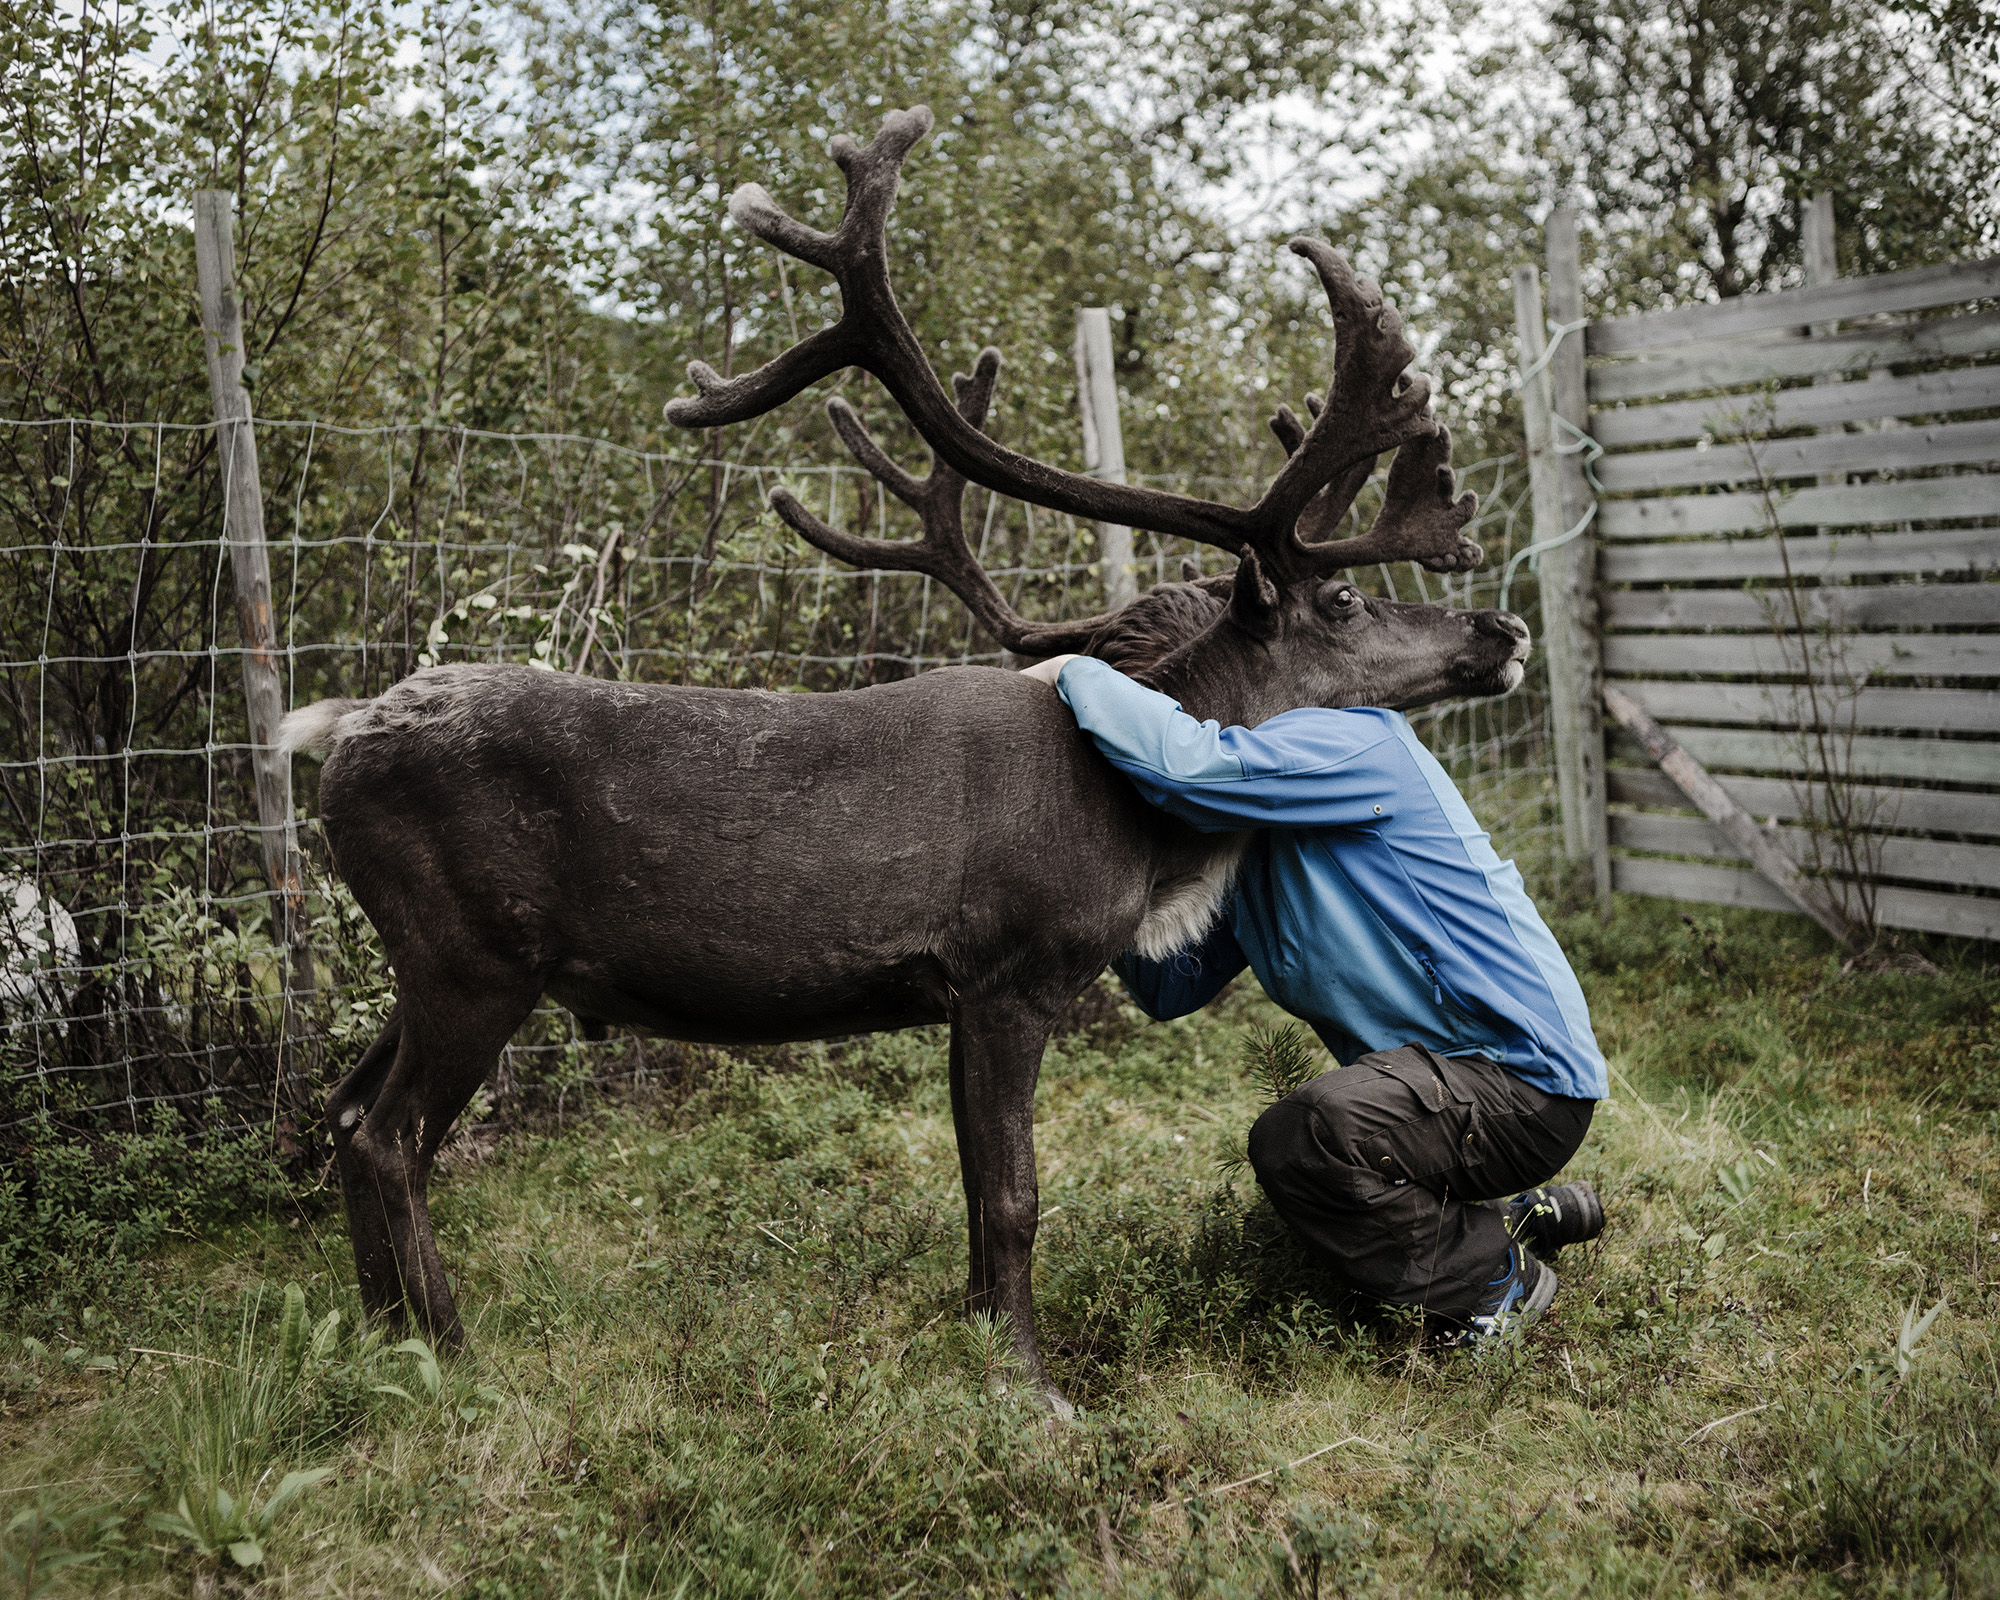 Lasse Gaup, a young reindeer herder from Karasjok, Norway, with one of his reindeer. Reindeer husbandry is a round-the-clock job.   Much of the Sami philosophy is based around nature and animals. They believe that nature is only borrowed and should be given back in the same condition. (Camilla Andersen/GroundTruth)